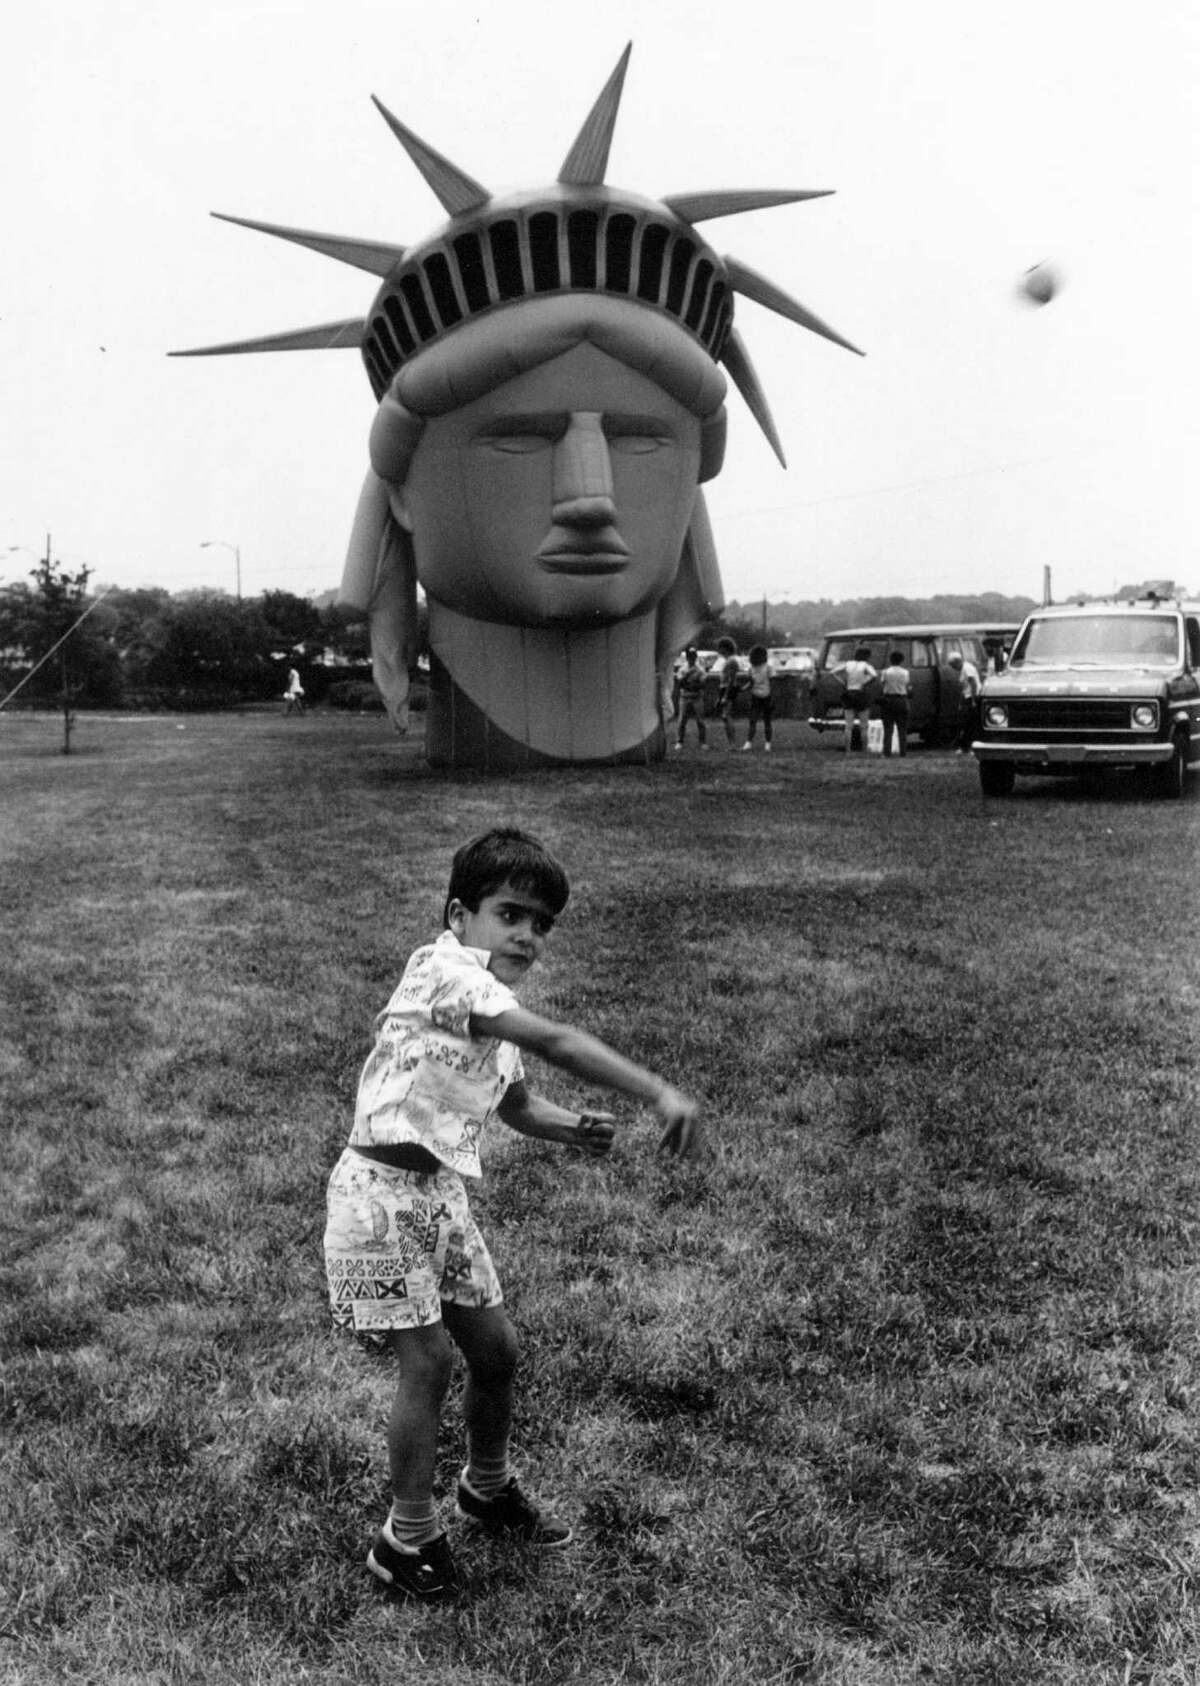 July 4, 1987: Carlos Lopez, 5, of Stamford frolics in Cummings Park in front of a balloon fasimile of the Statue of Liberty's head. The balloon was set to float above the park in the city's fourth of July celebration.